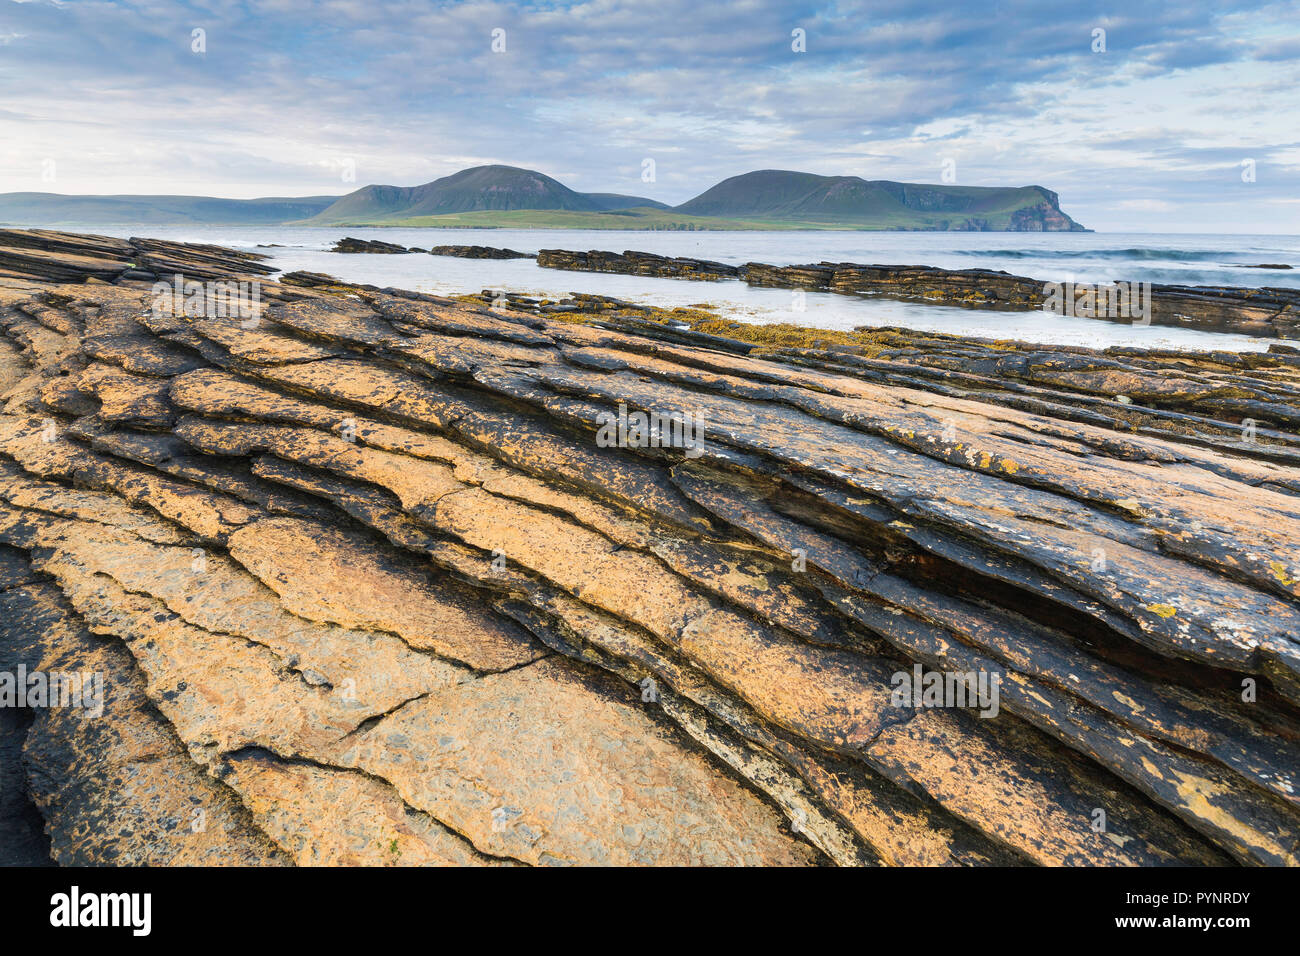 Warbeth Beach, Stromness, Orkney with a view to Hoy, Orkney Islands - Stock Image